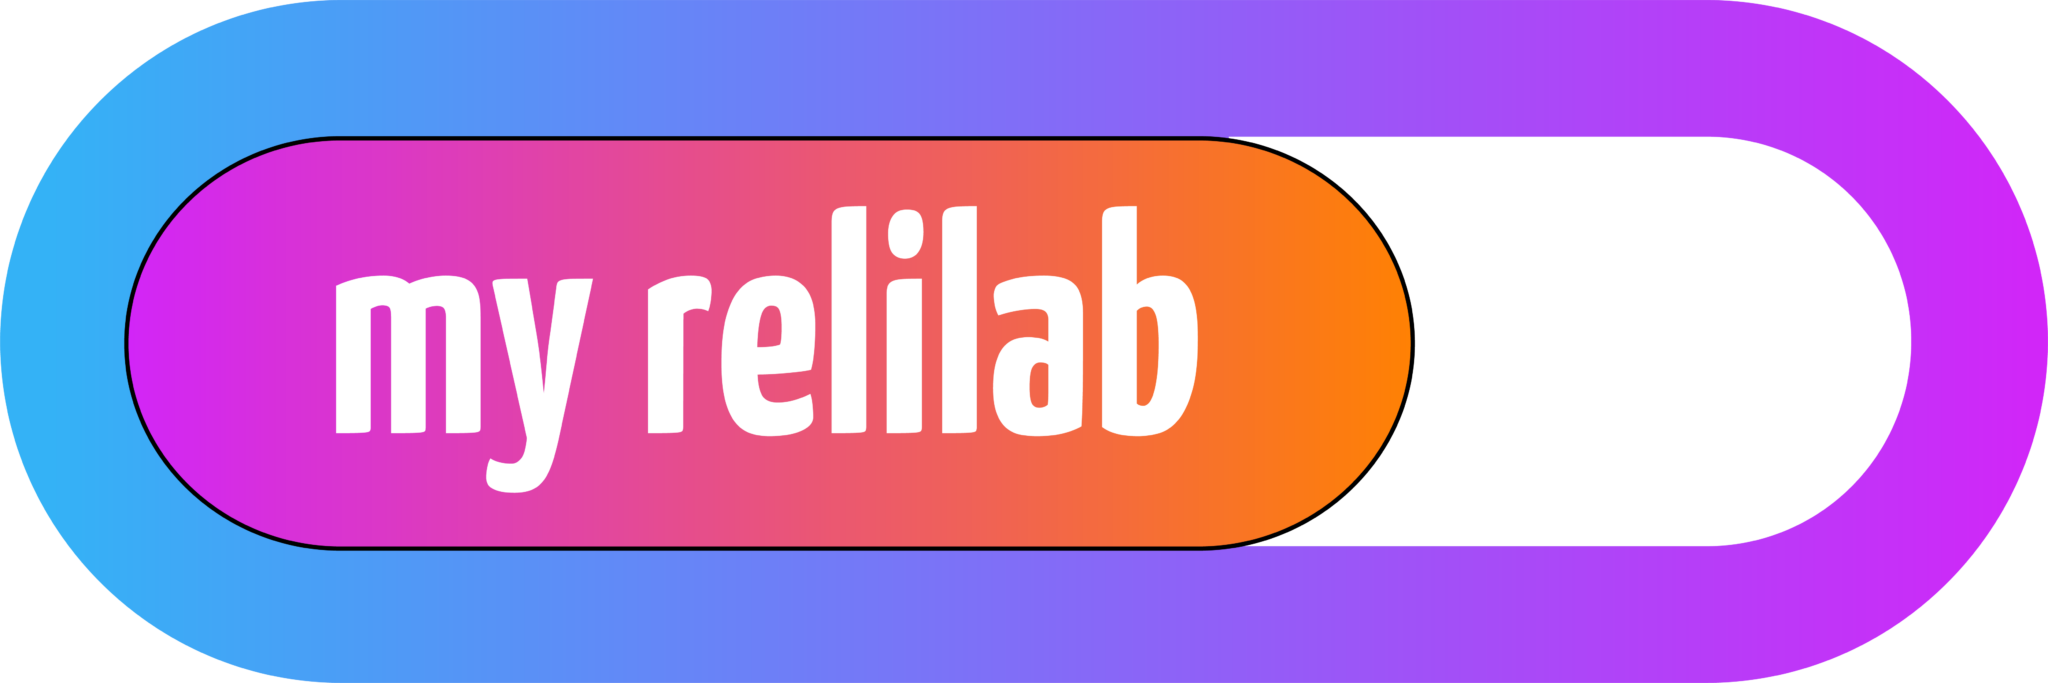 my·relilab